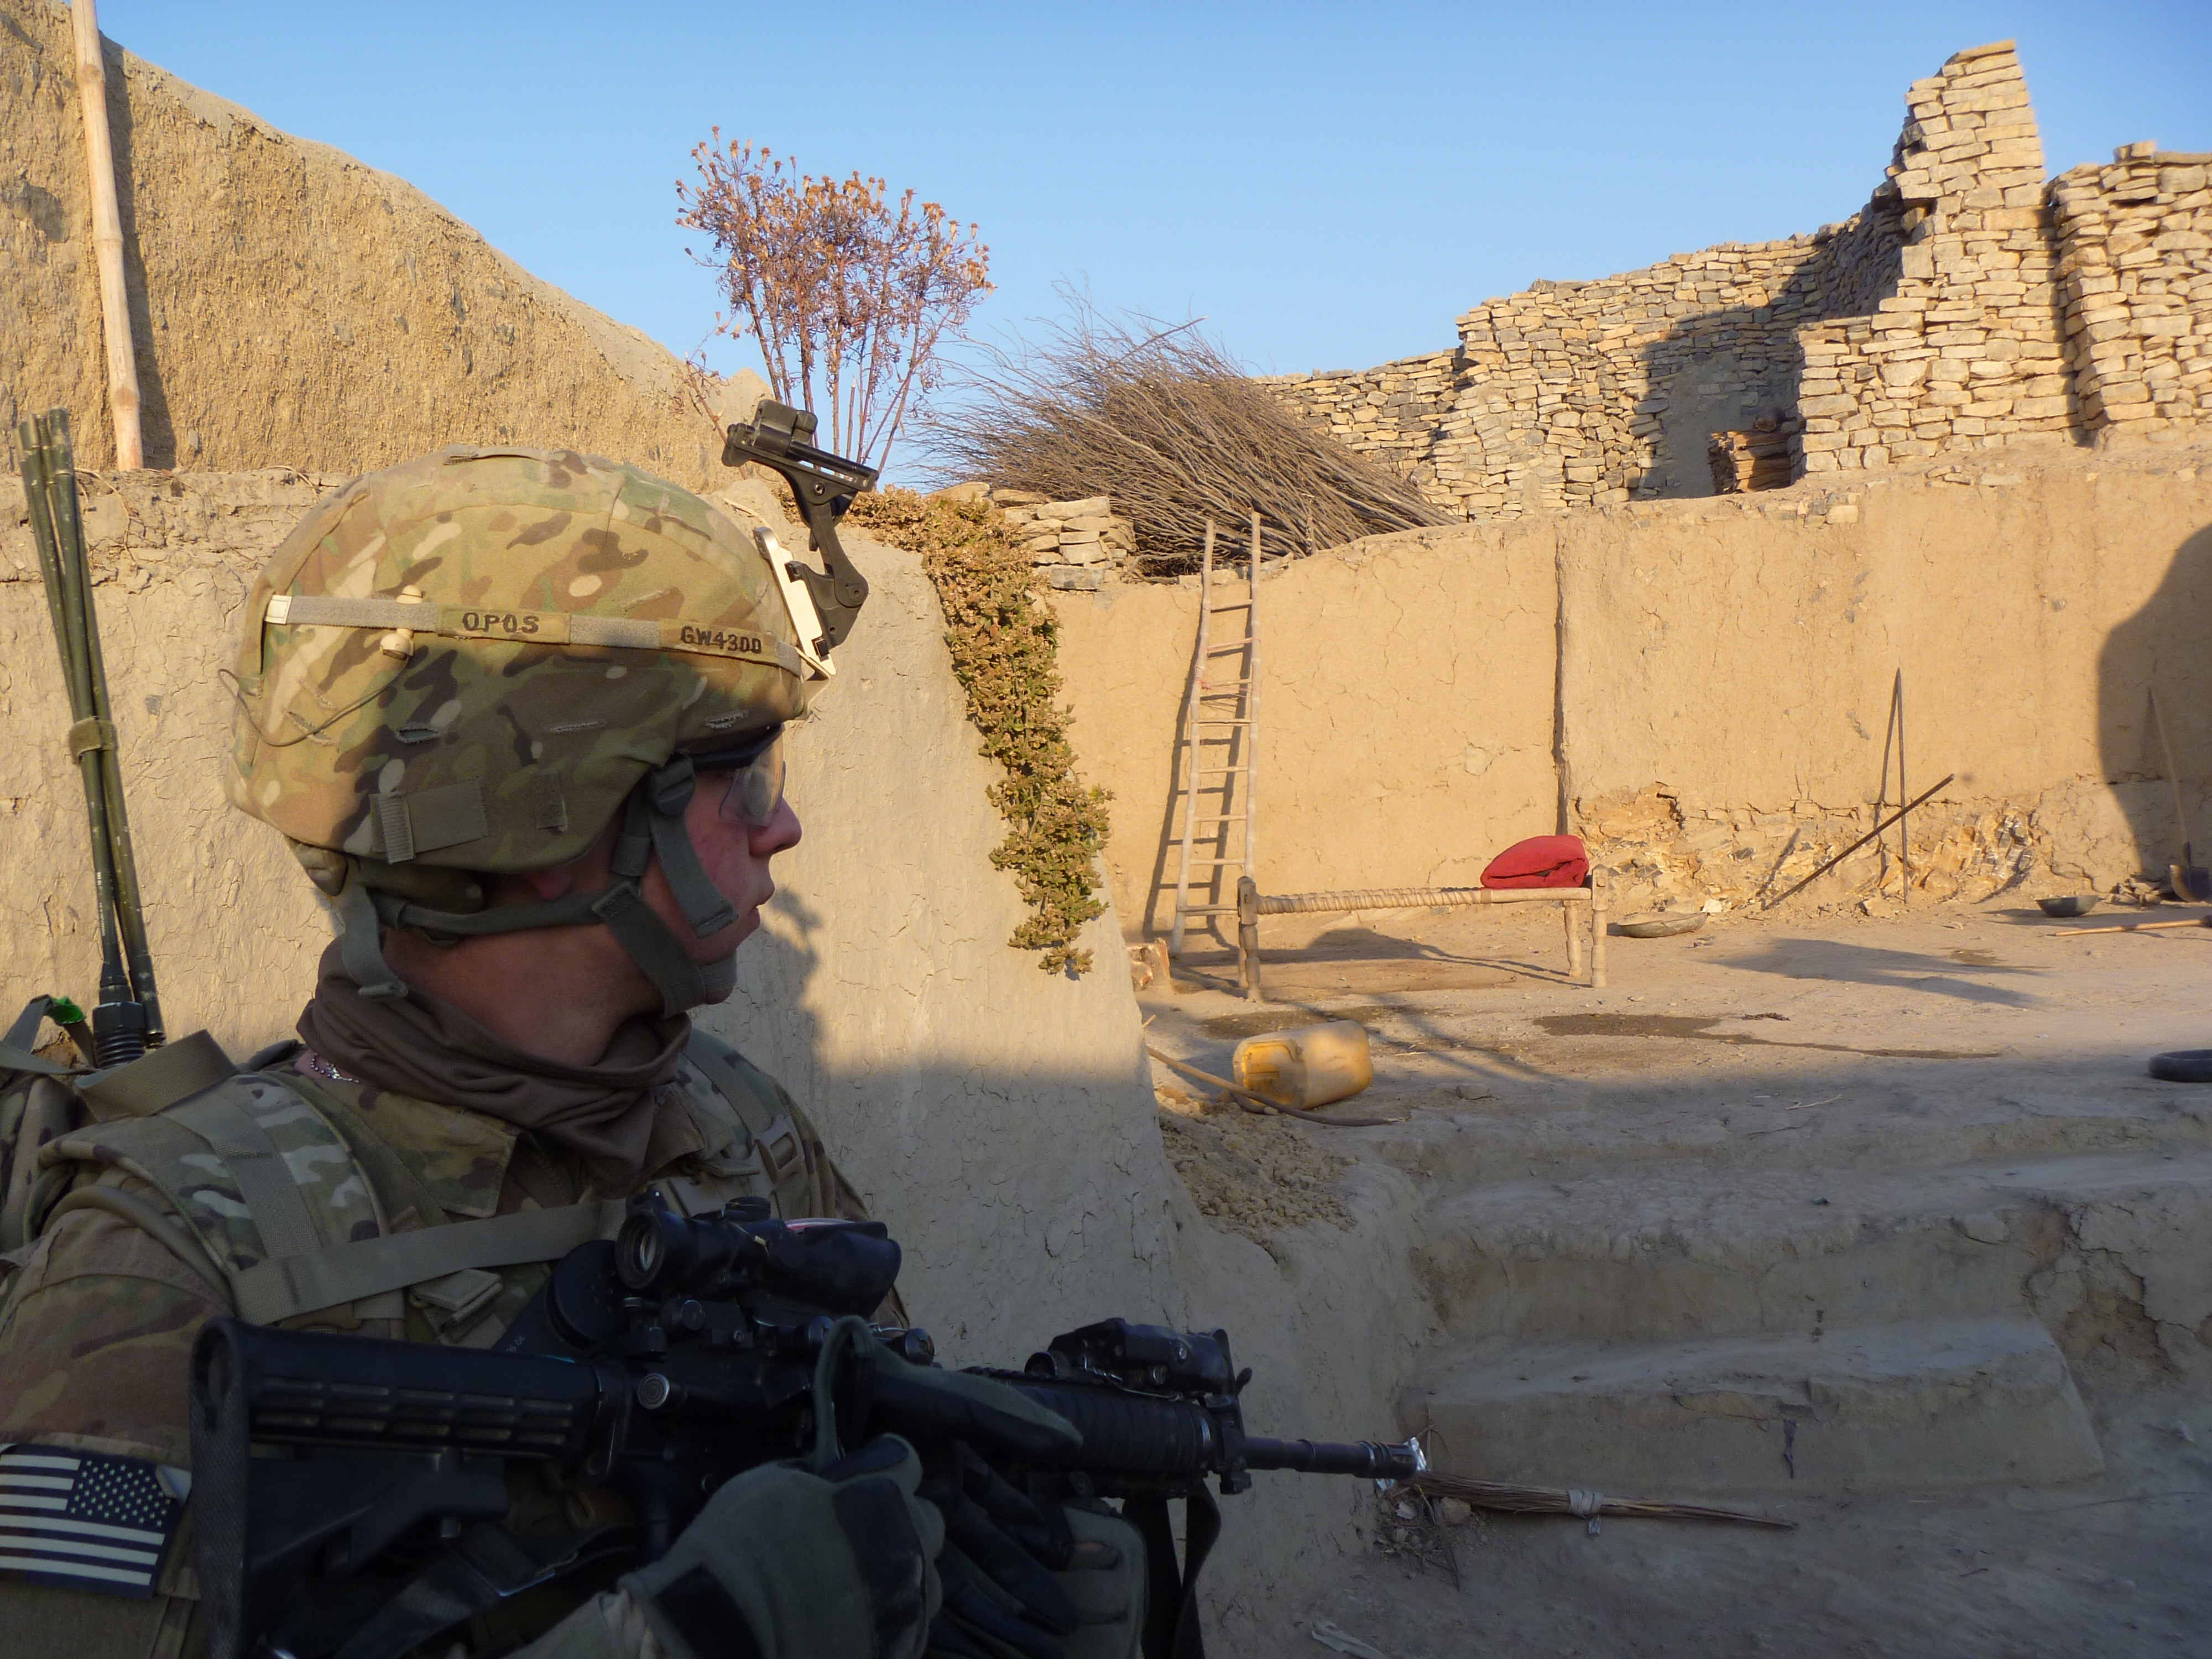 Soldier entering a qalat in Afghanistan